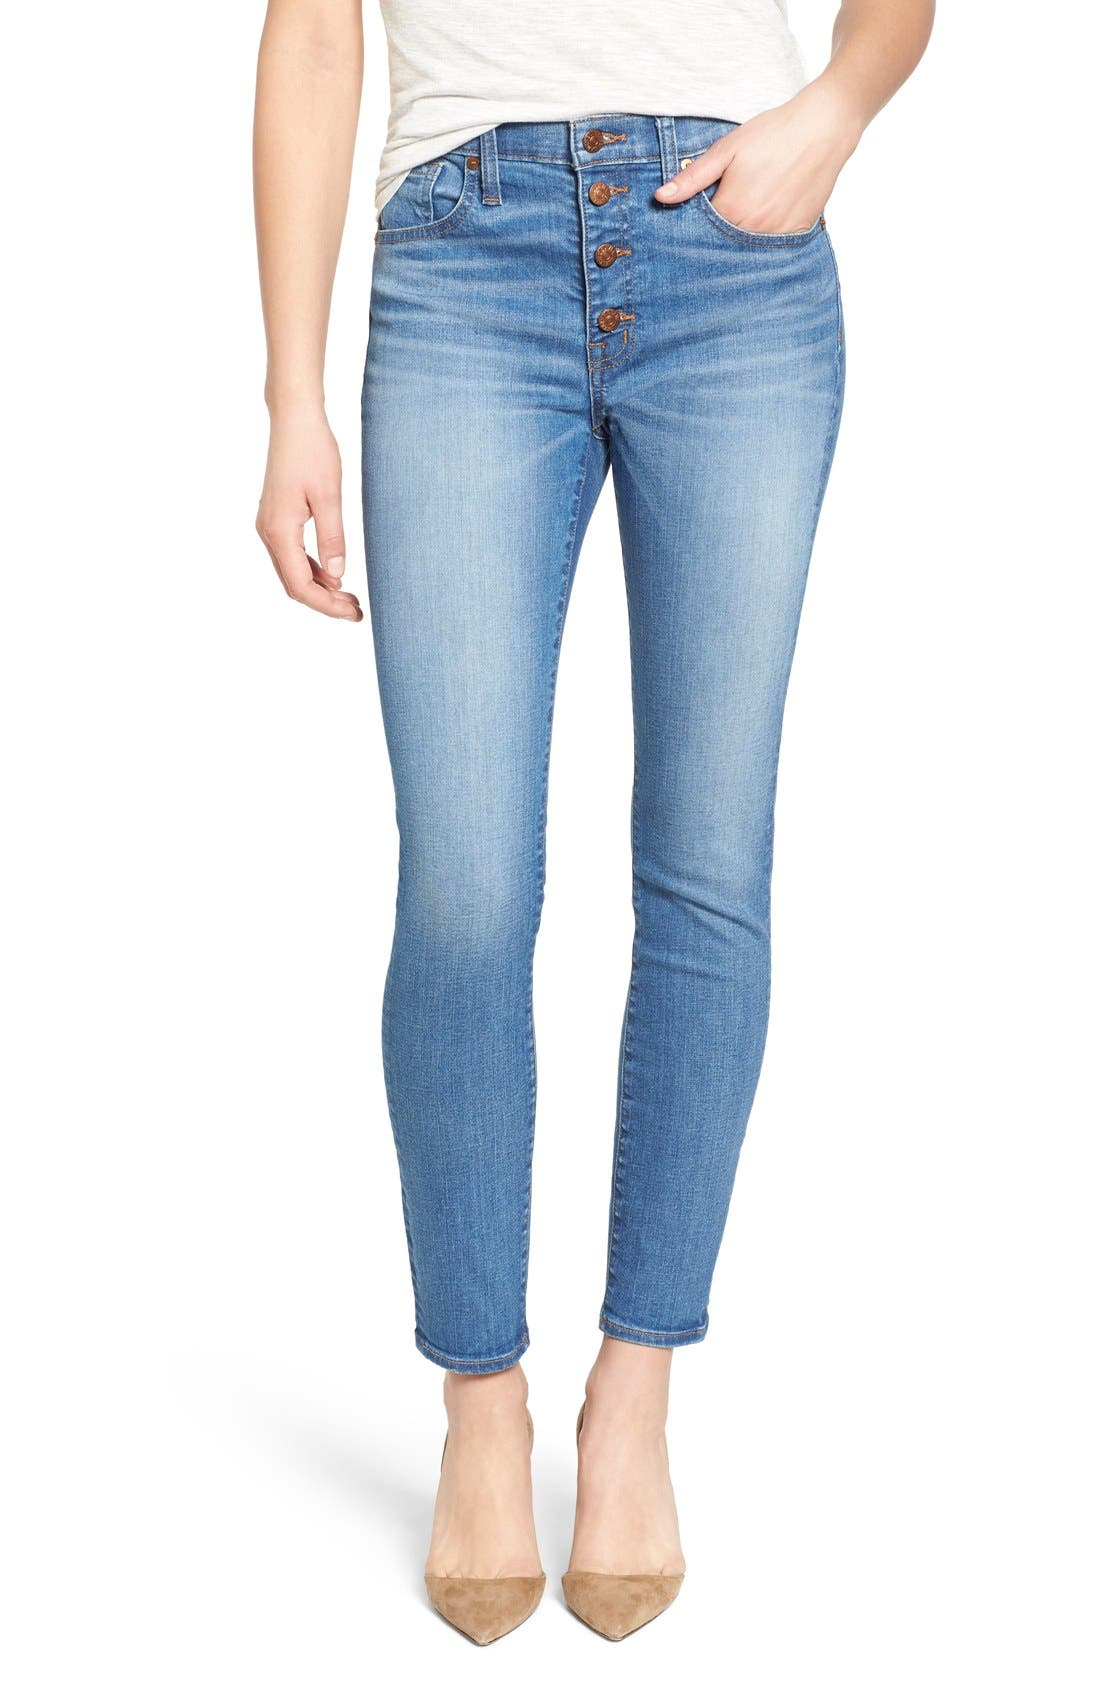 Main Image - Madewell 'High Riser - Button Through' Crop Skinny Skinny Jeans (Kearney Wash)